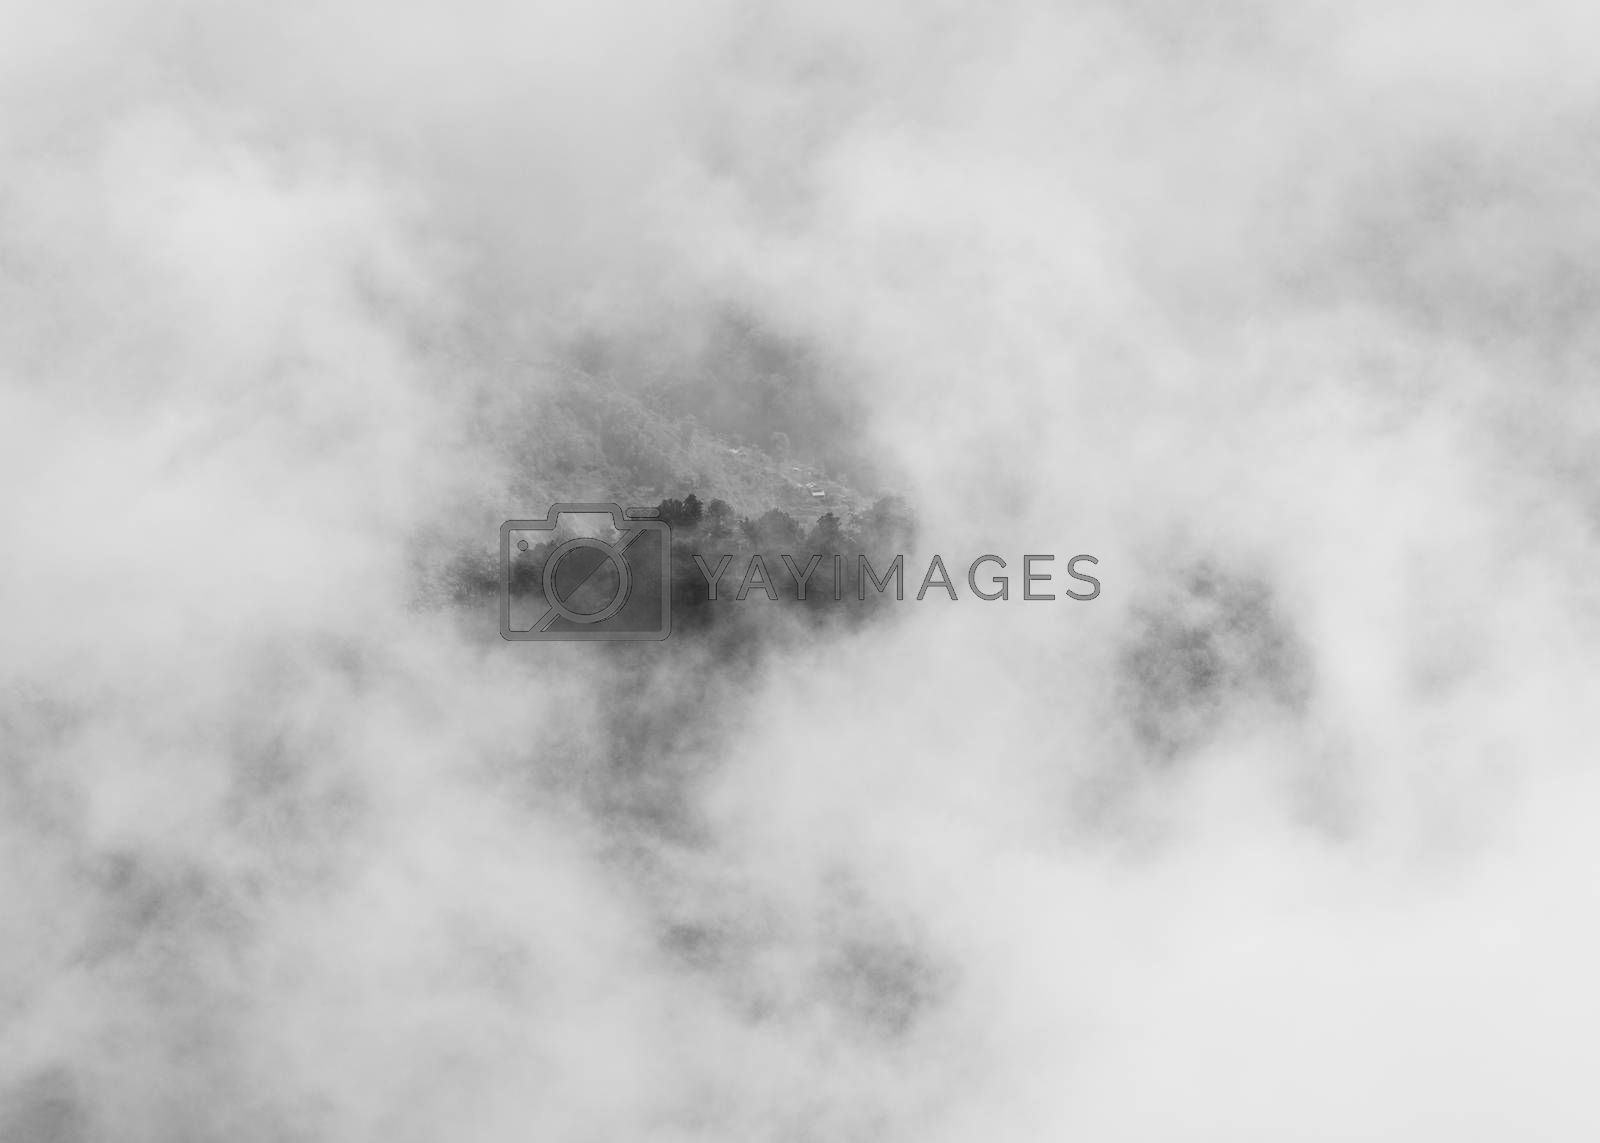 Trees on hilltop through clouds, black and white photography